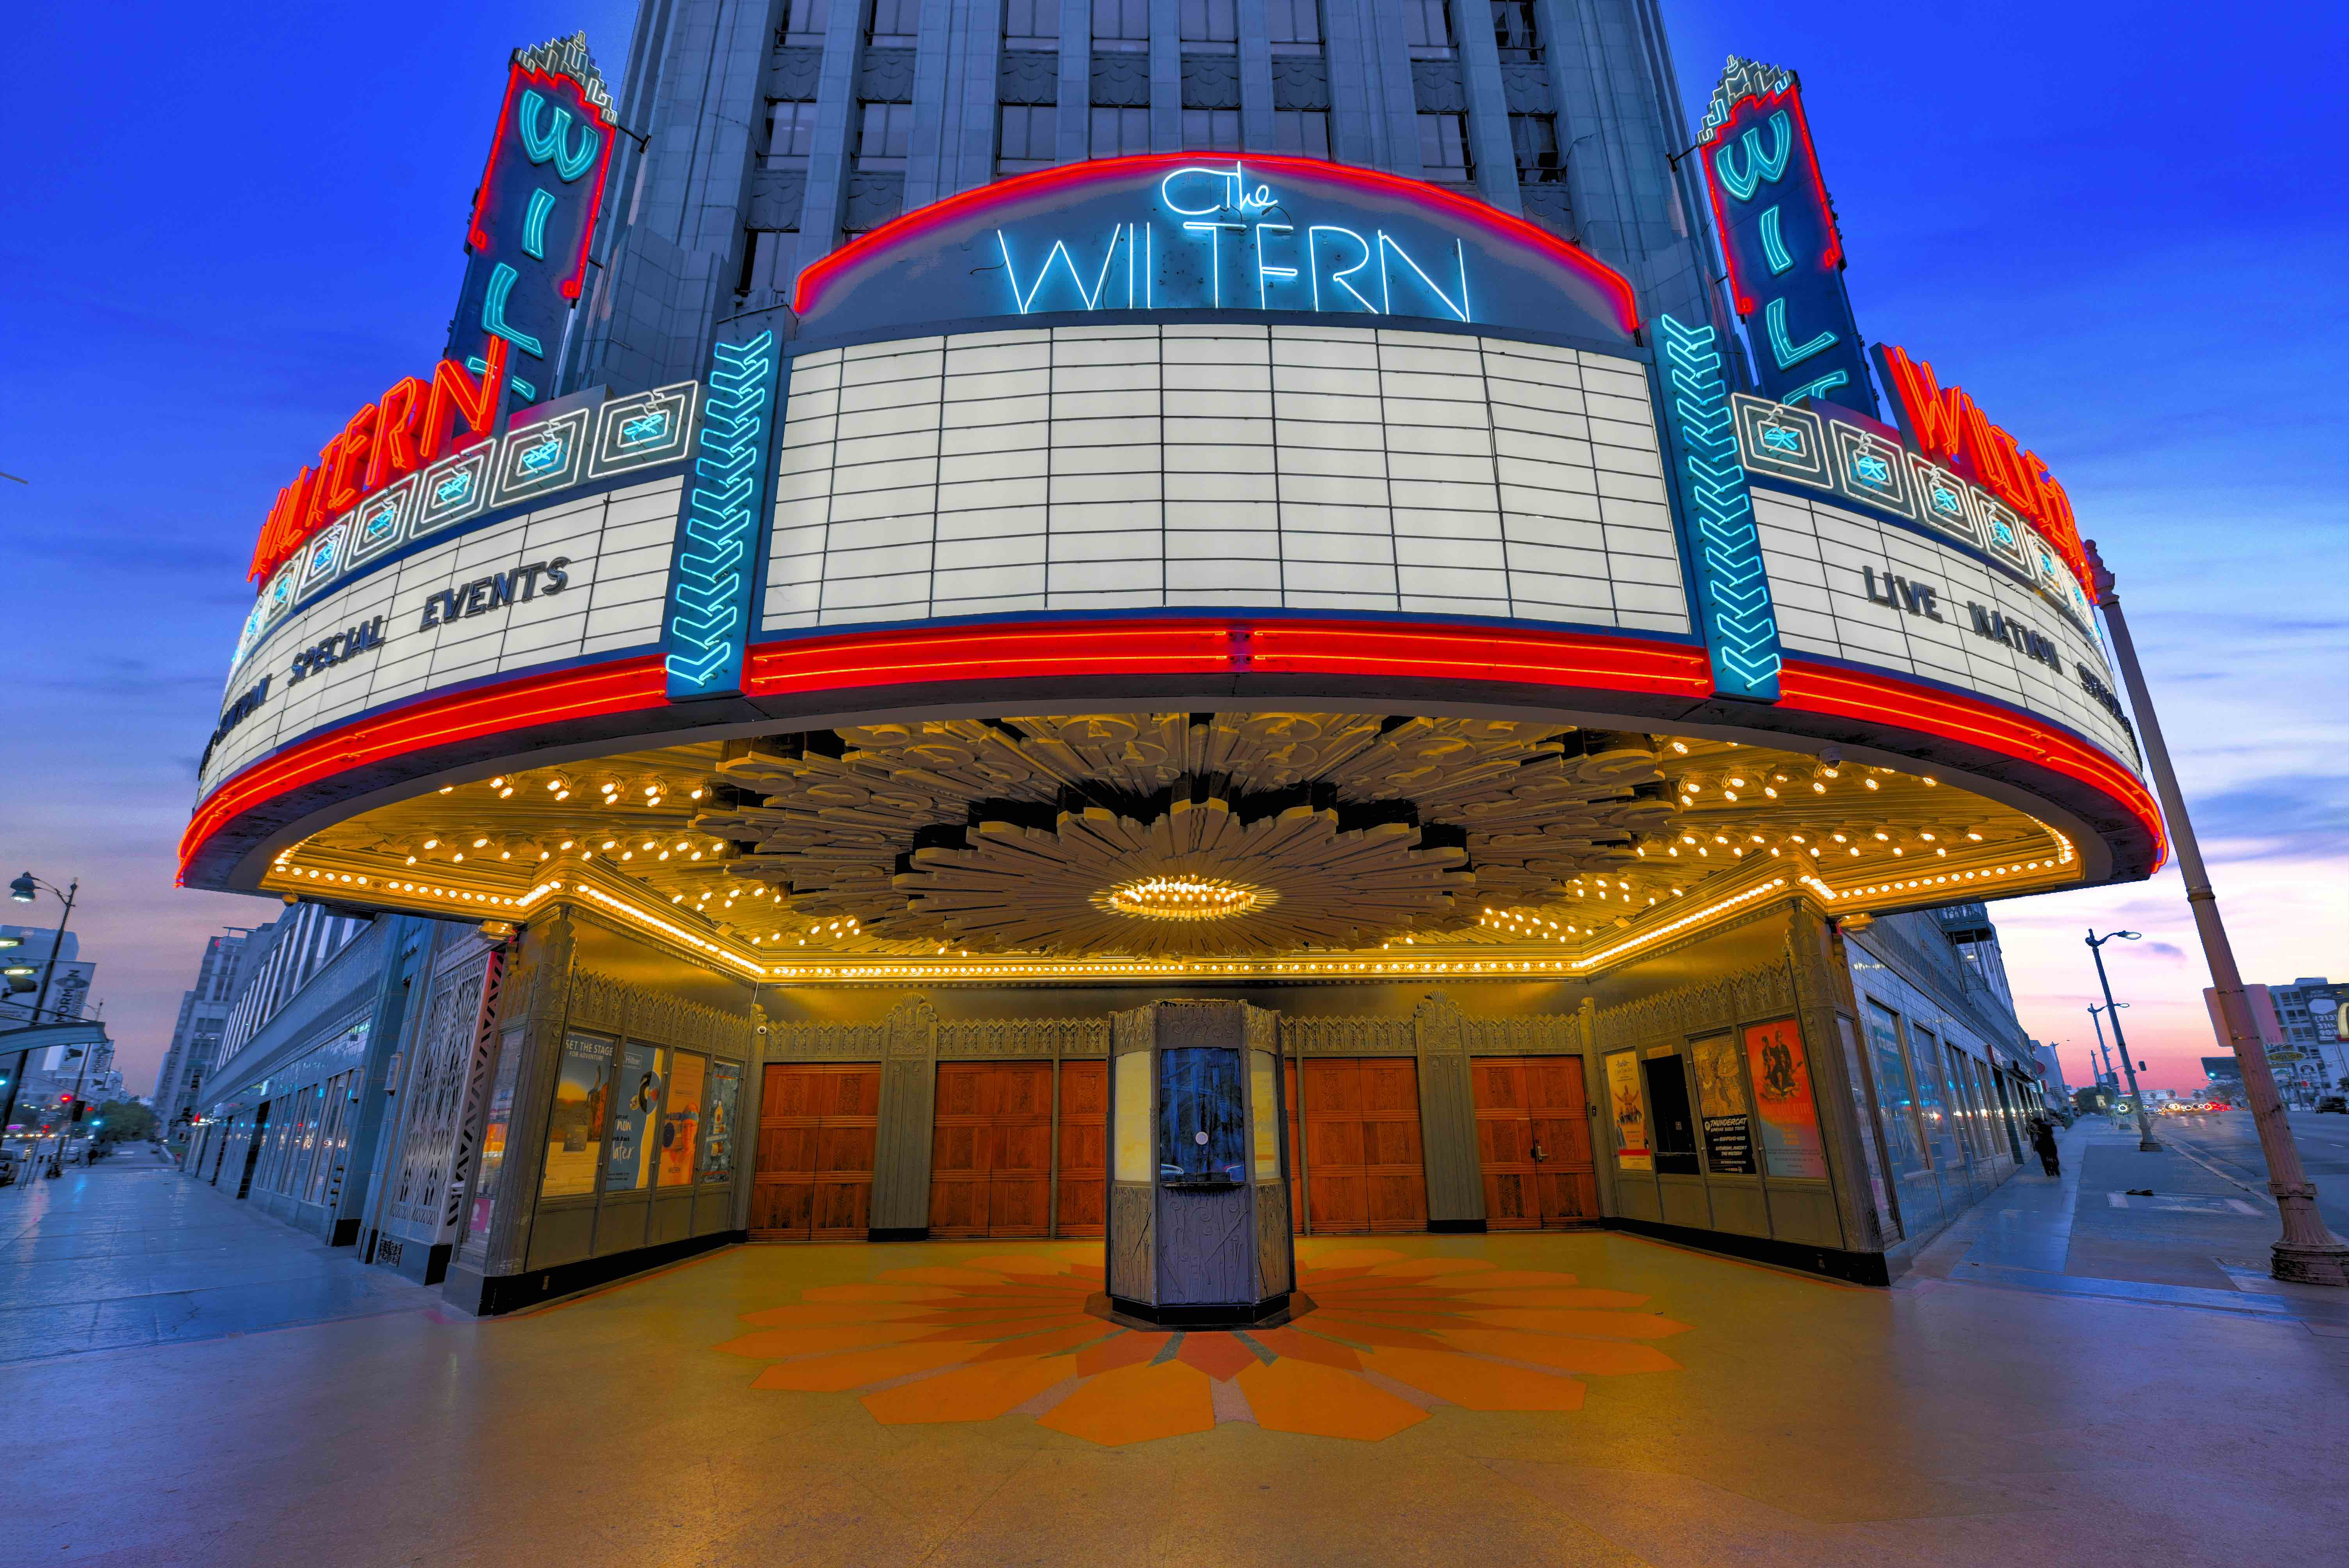 Entrance and marquee to The Wiltern, Los Angeles